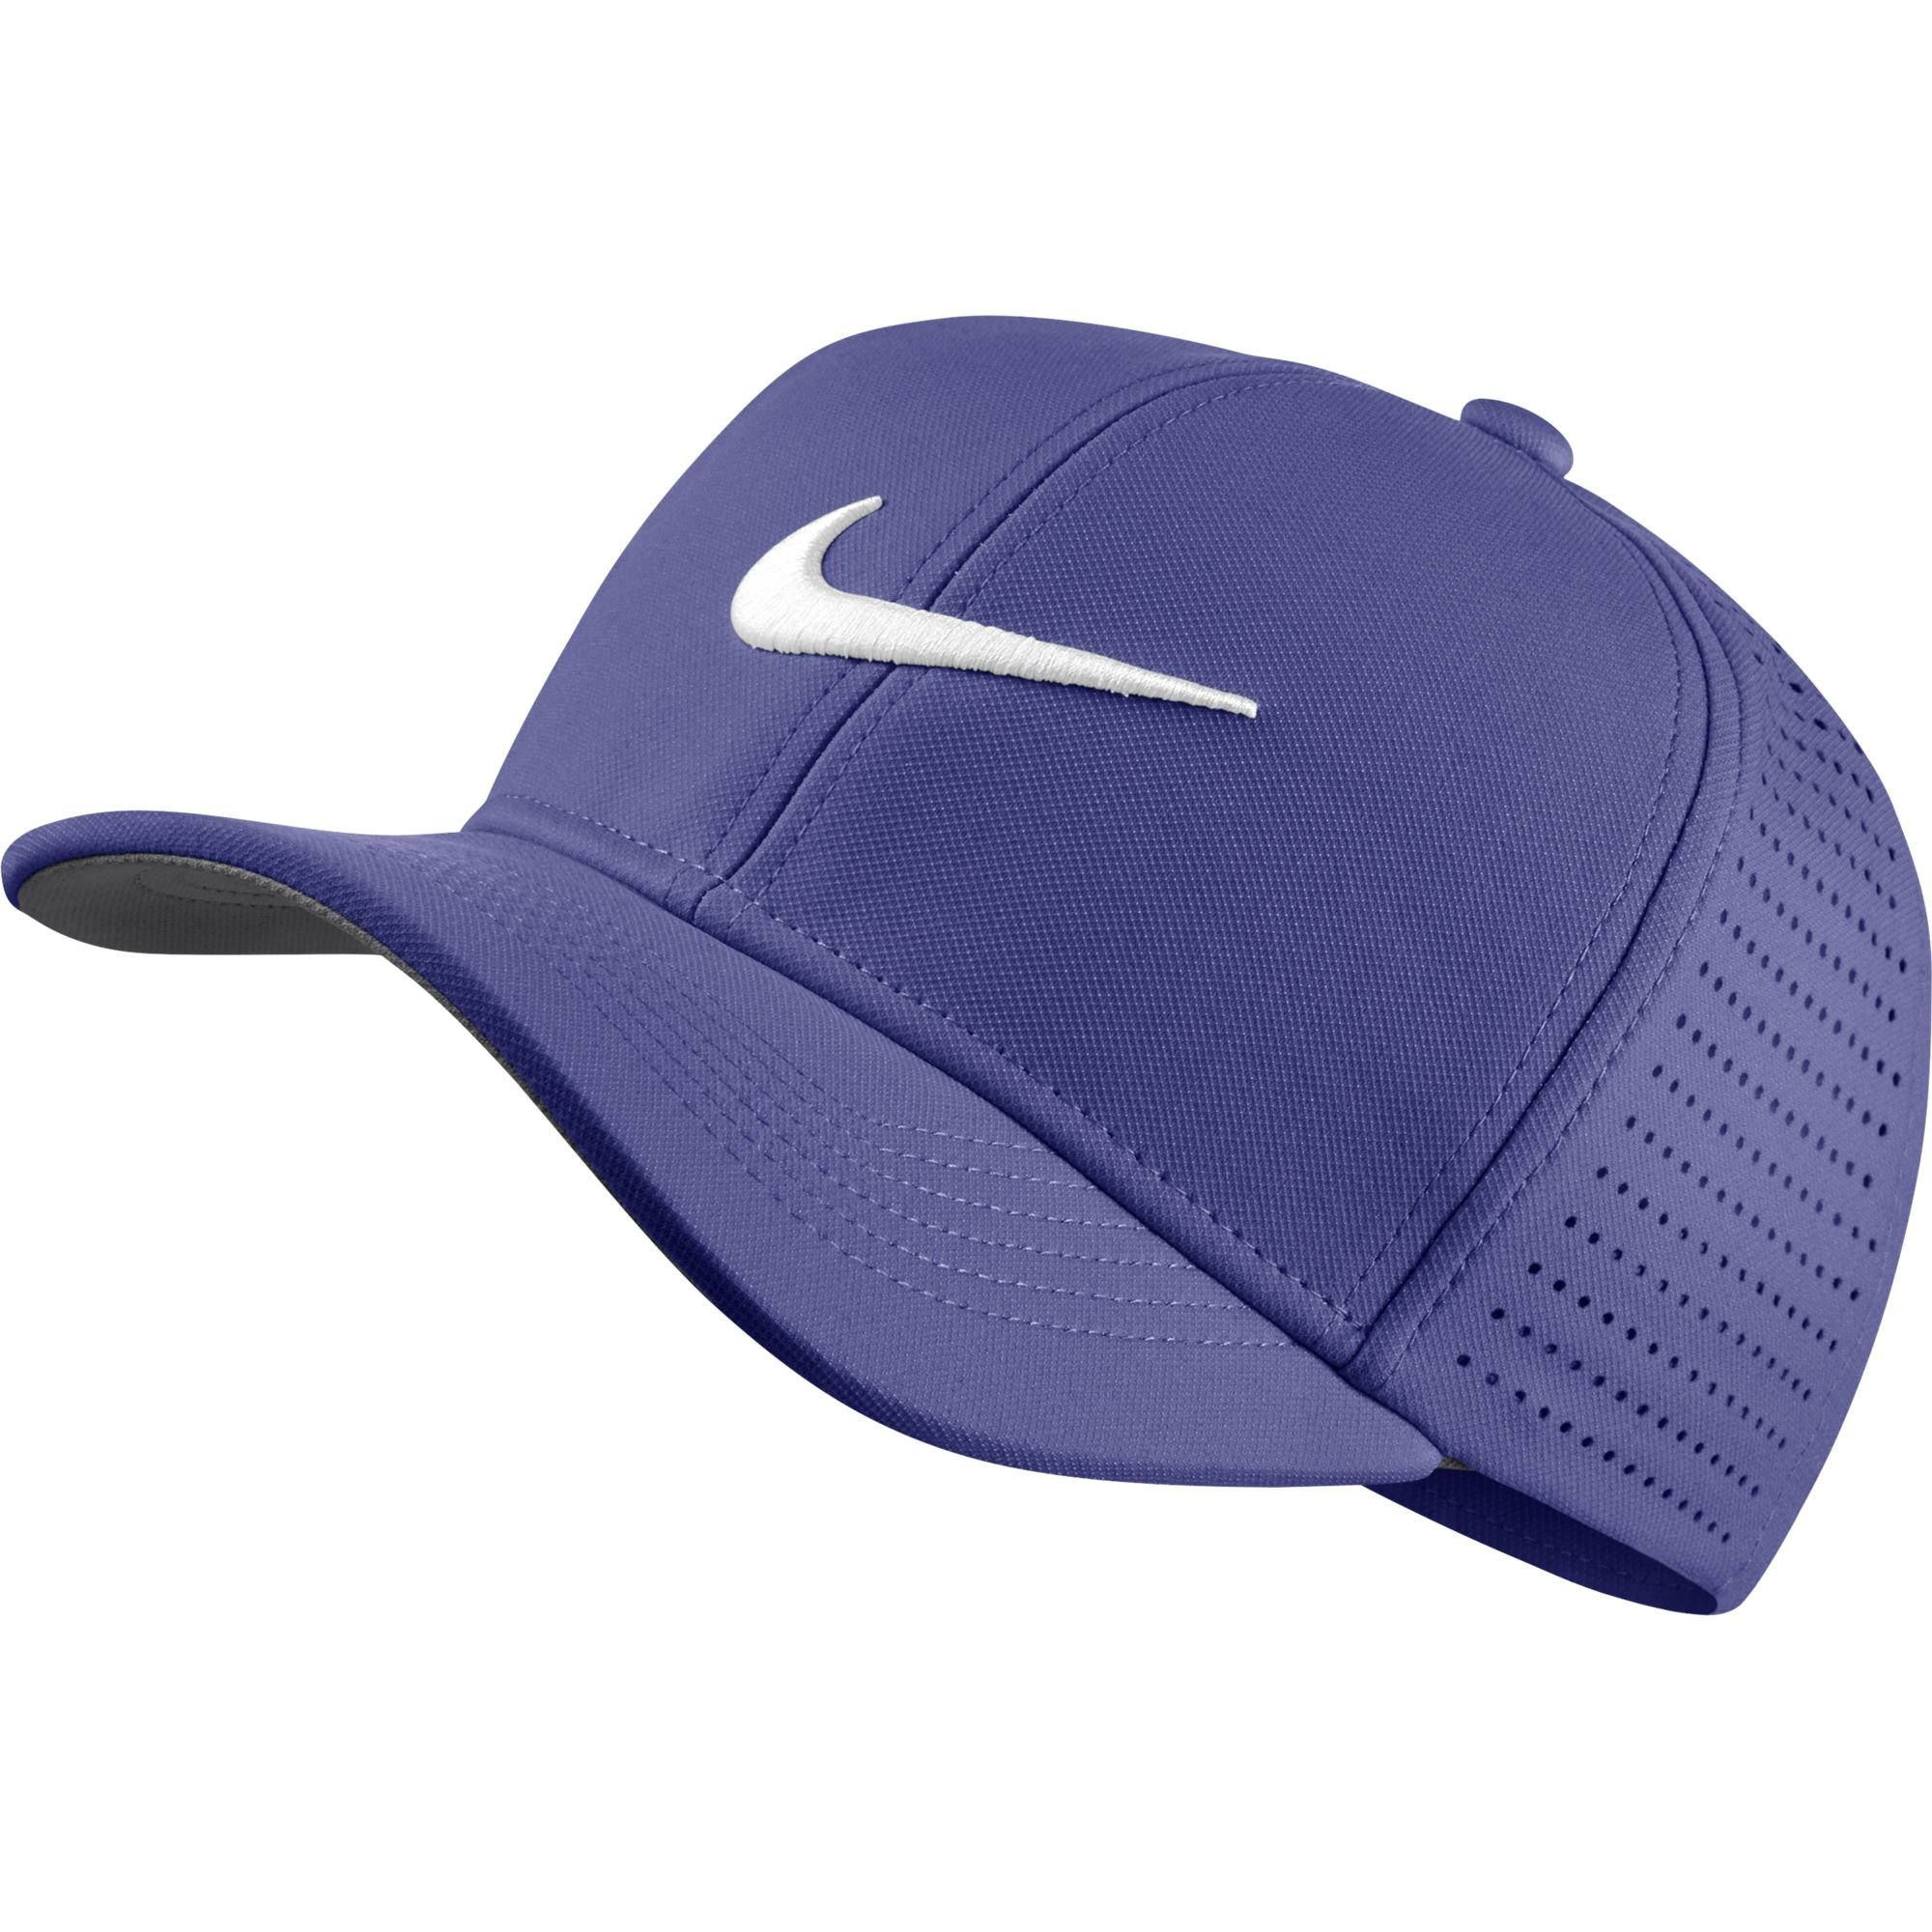 NIKE Unisex Kids' Classic 99 Hat, Deep Night/Anthracite/White, One Size